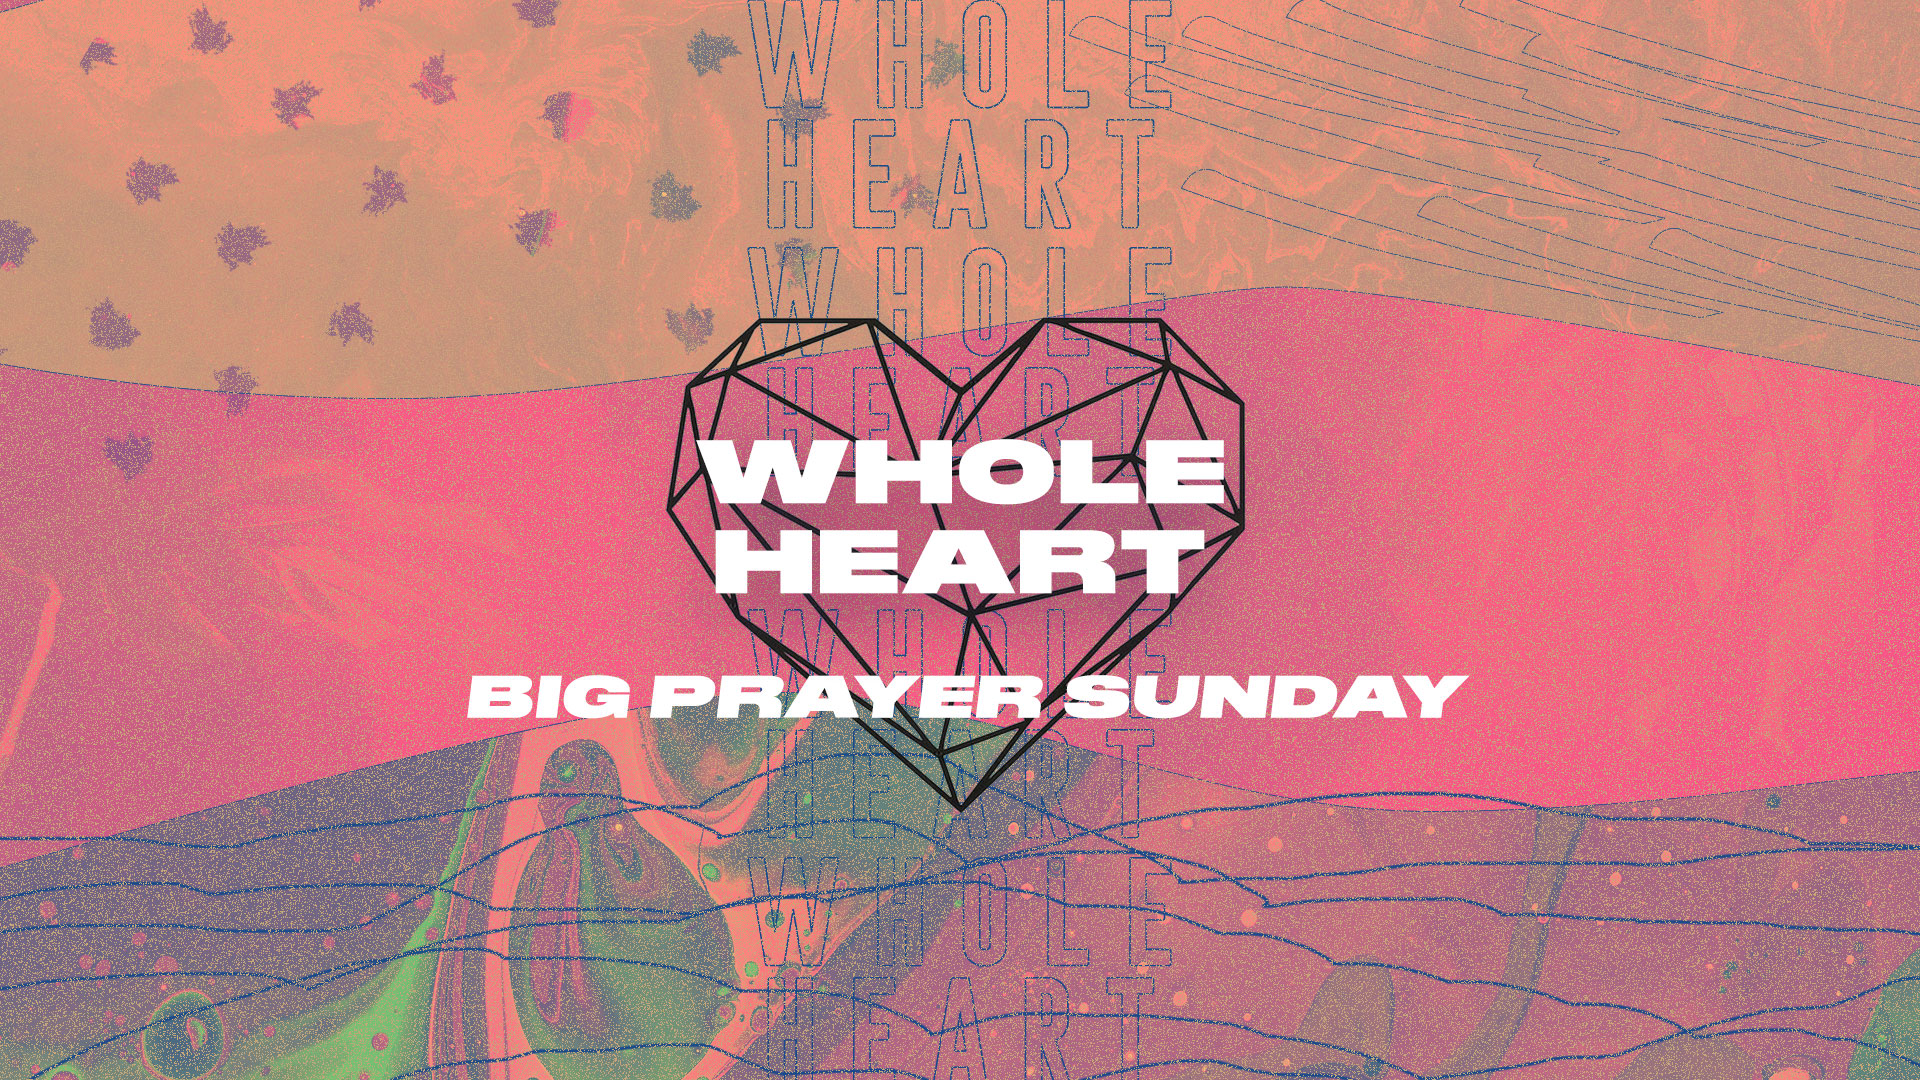 Big Prayer Sunday - Sunday 31st January 2021 - Jamie Harland